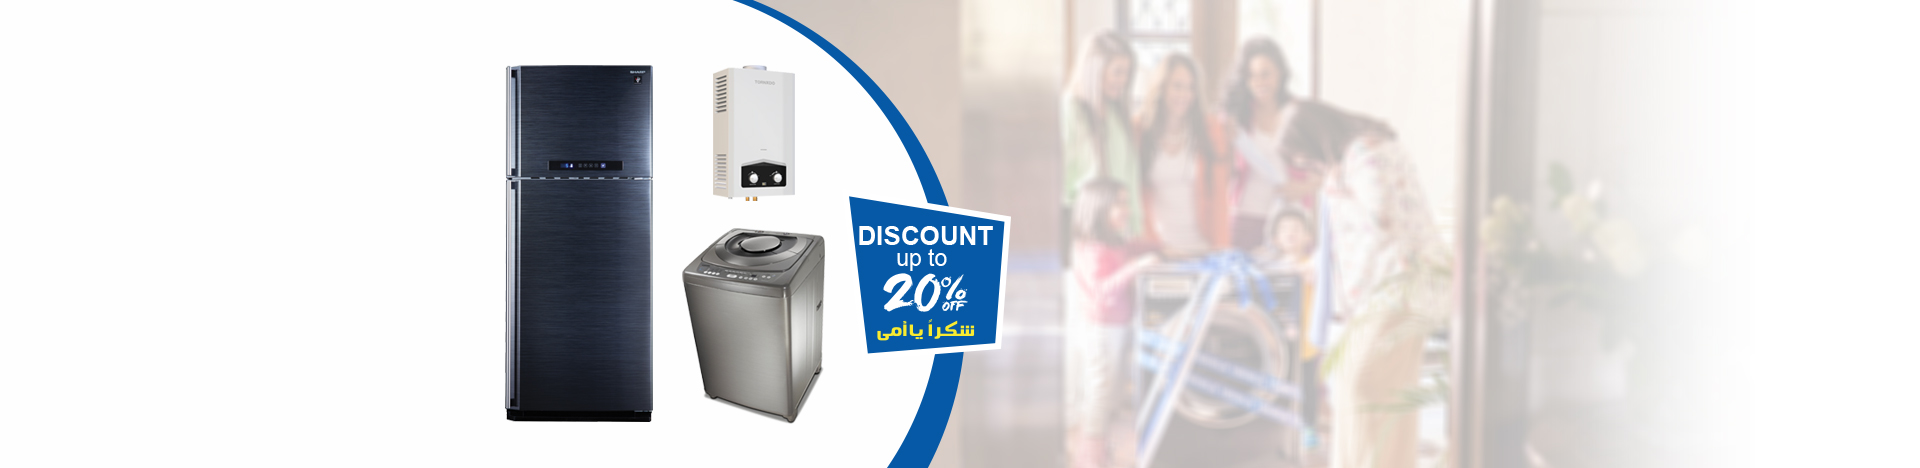 Home Appliances Offers & Discount